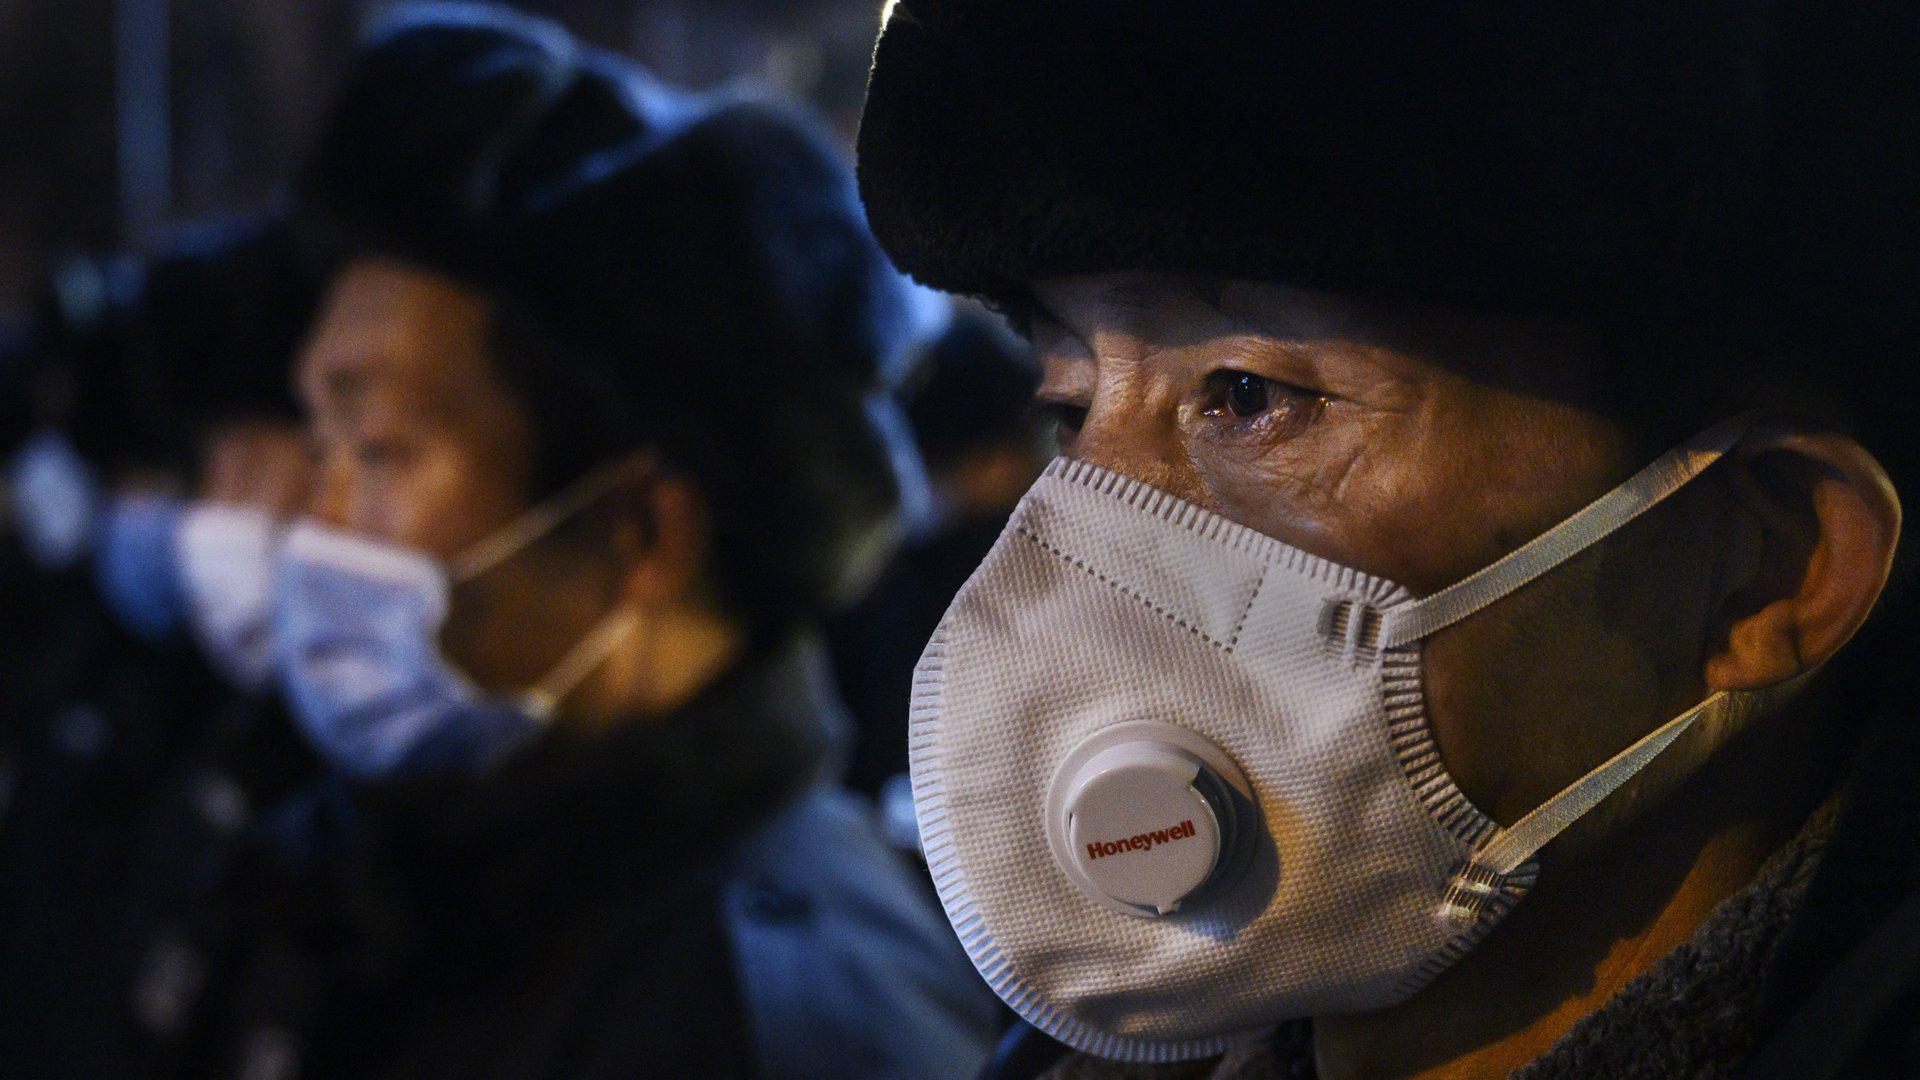 A Chinese security guard wears a protective mask as he lines up with others on February 9, 2020 in Beijing, China. (Credit: Kevin Frayer/Getty Images)